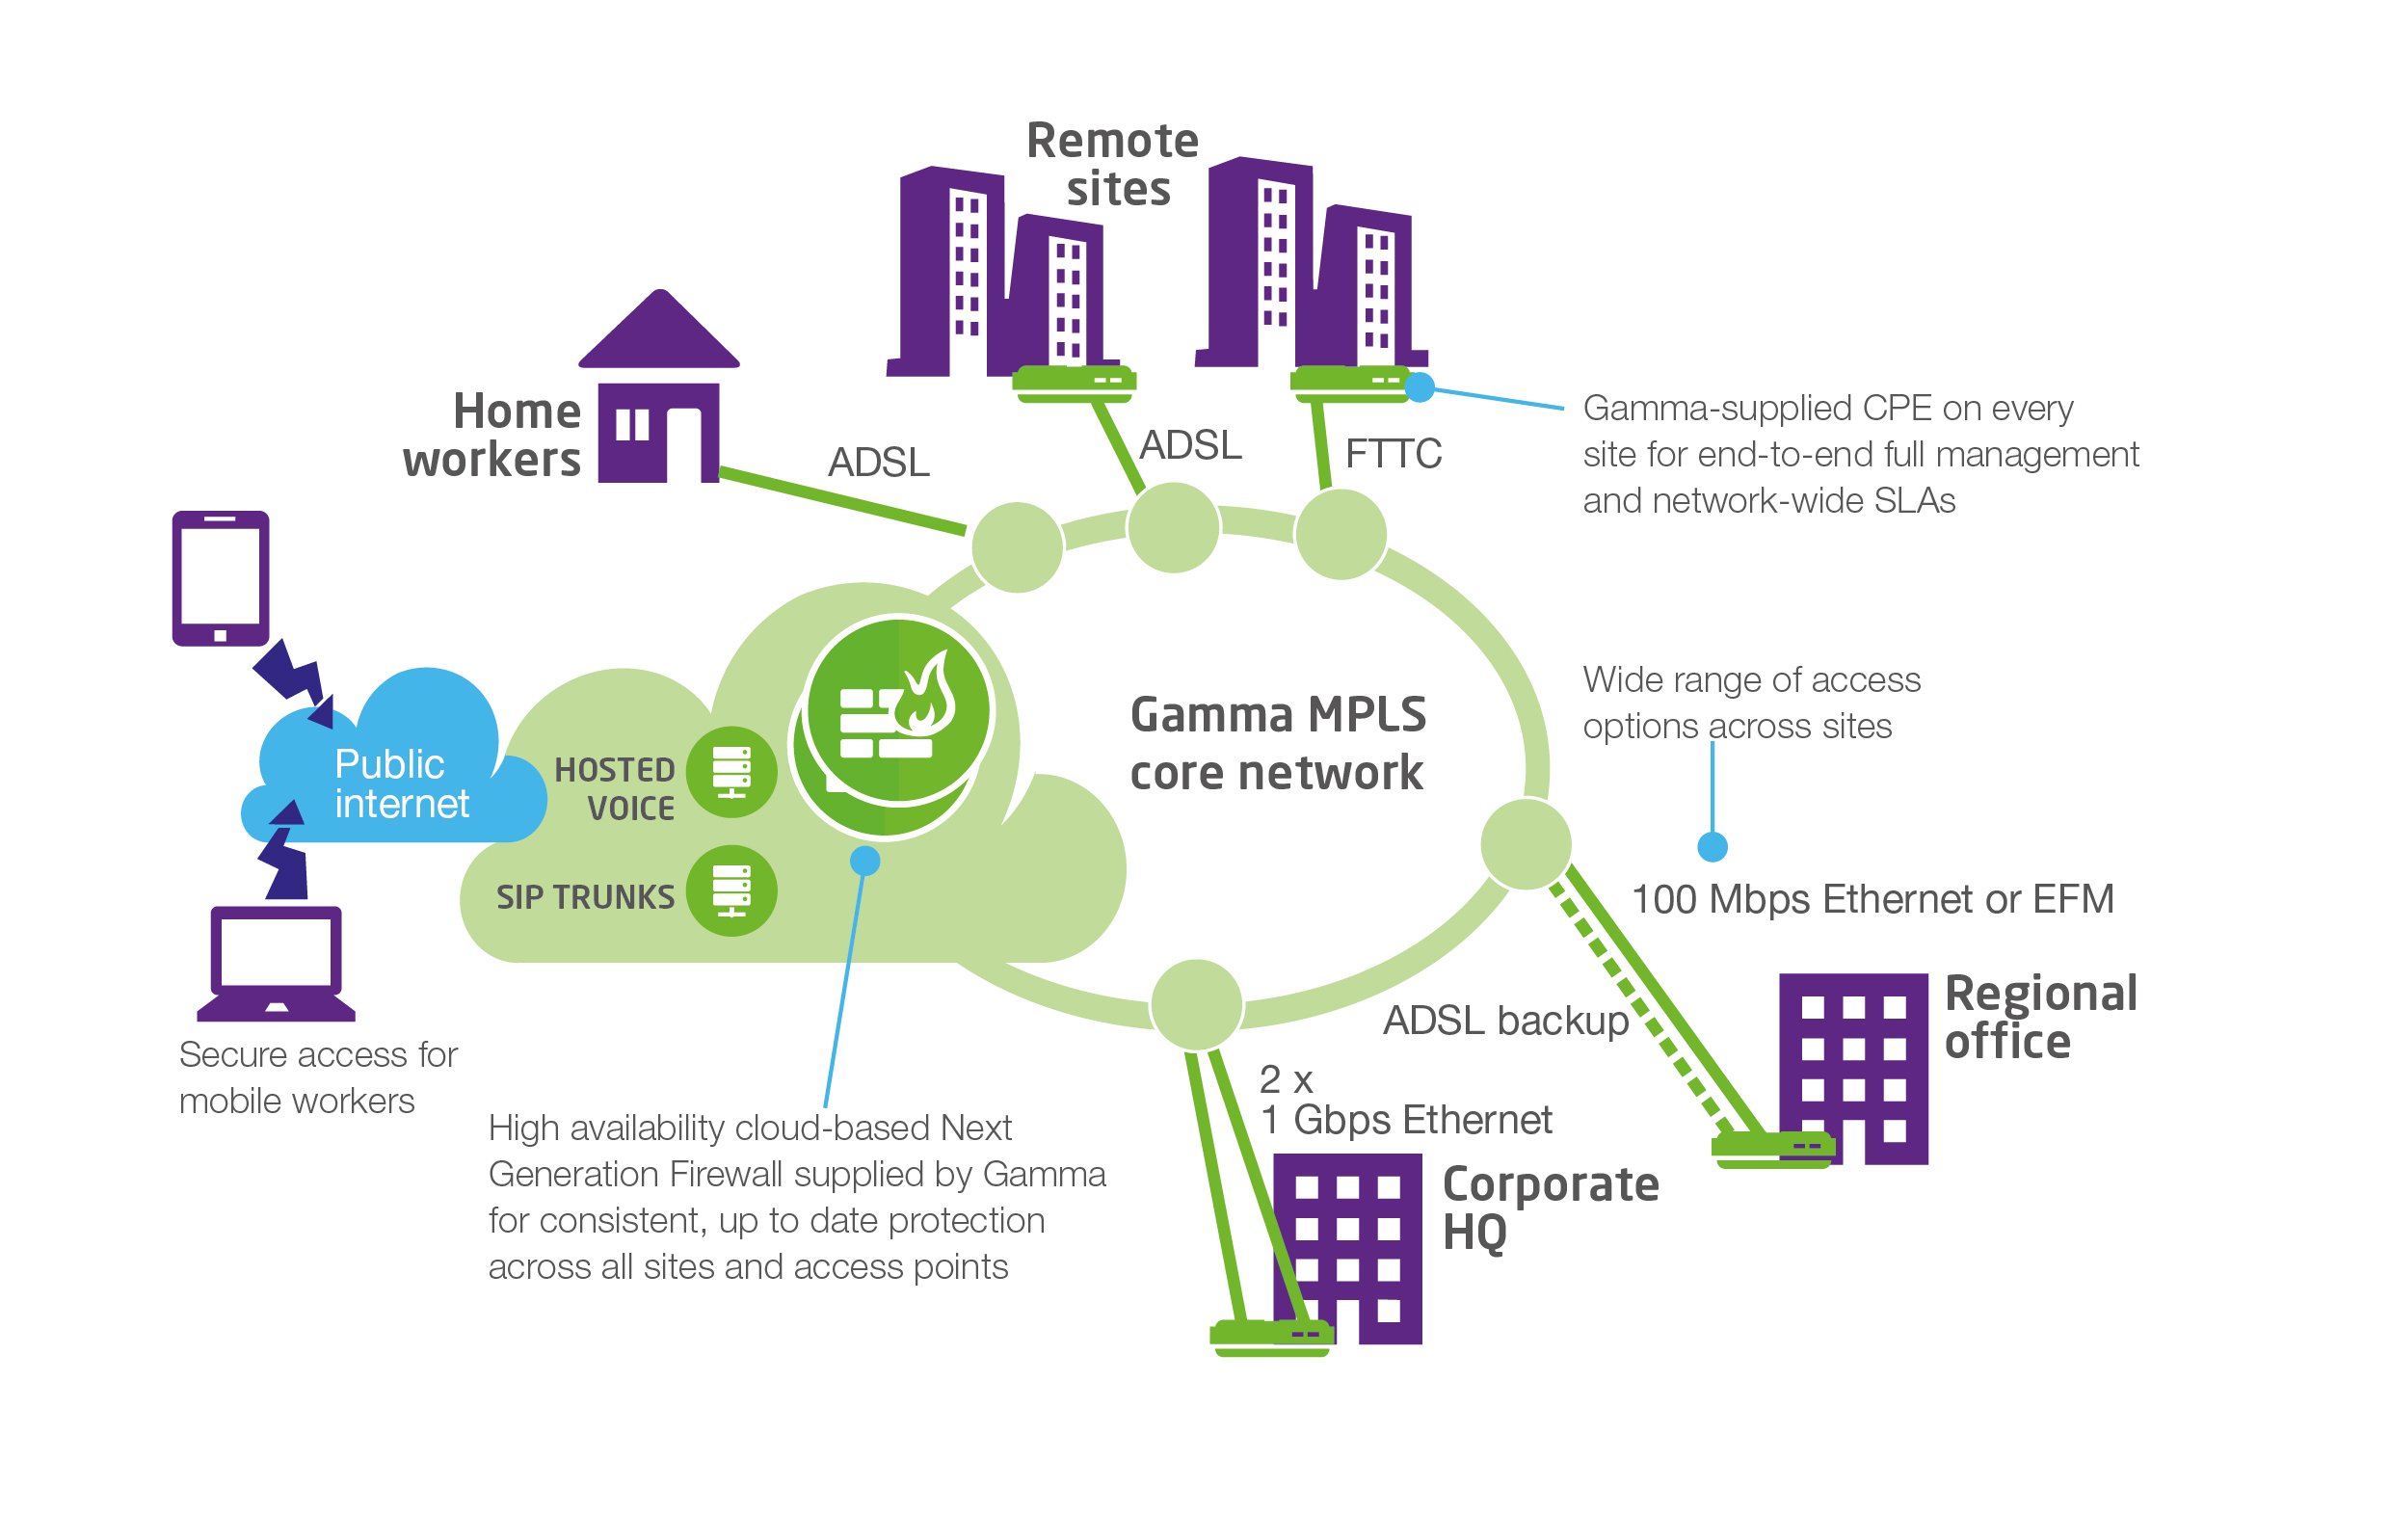 Gamma's MPLS core network Gamma s core network is a Multiprotocol Label Switching (MPLS)-based Wide Area Network (WAN) that enhances the inherent benefits of MPLS with the integration of our